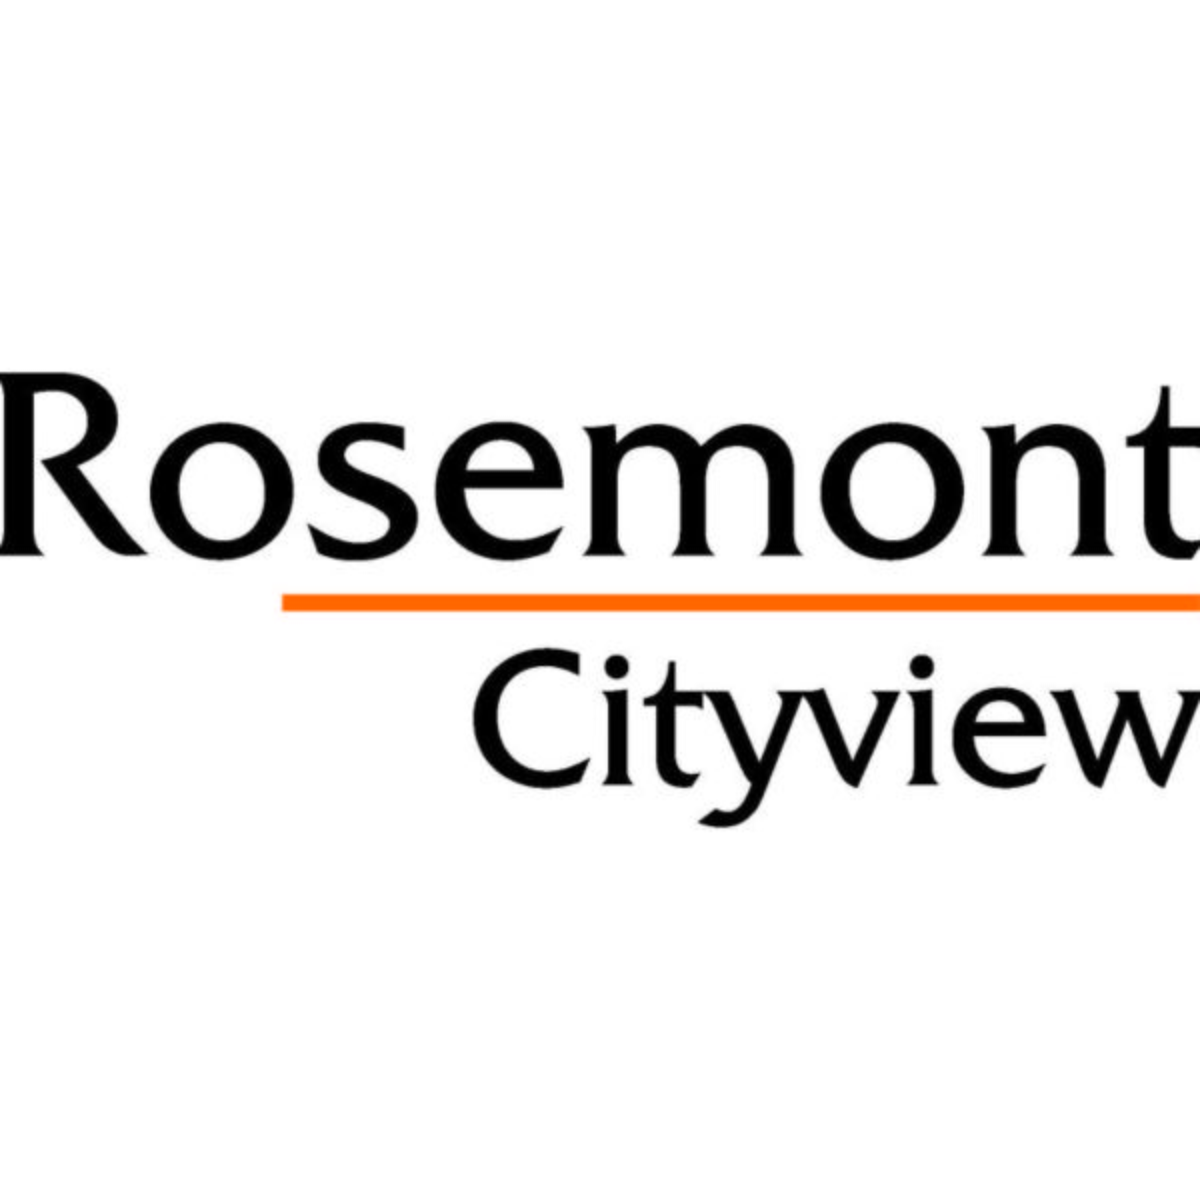 Rosemont Cityview Apartments In Marietta, GA